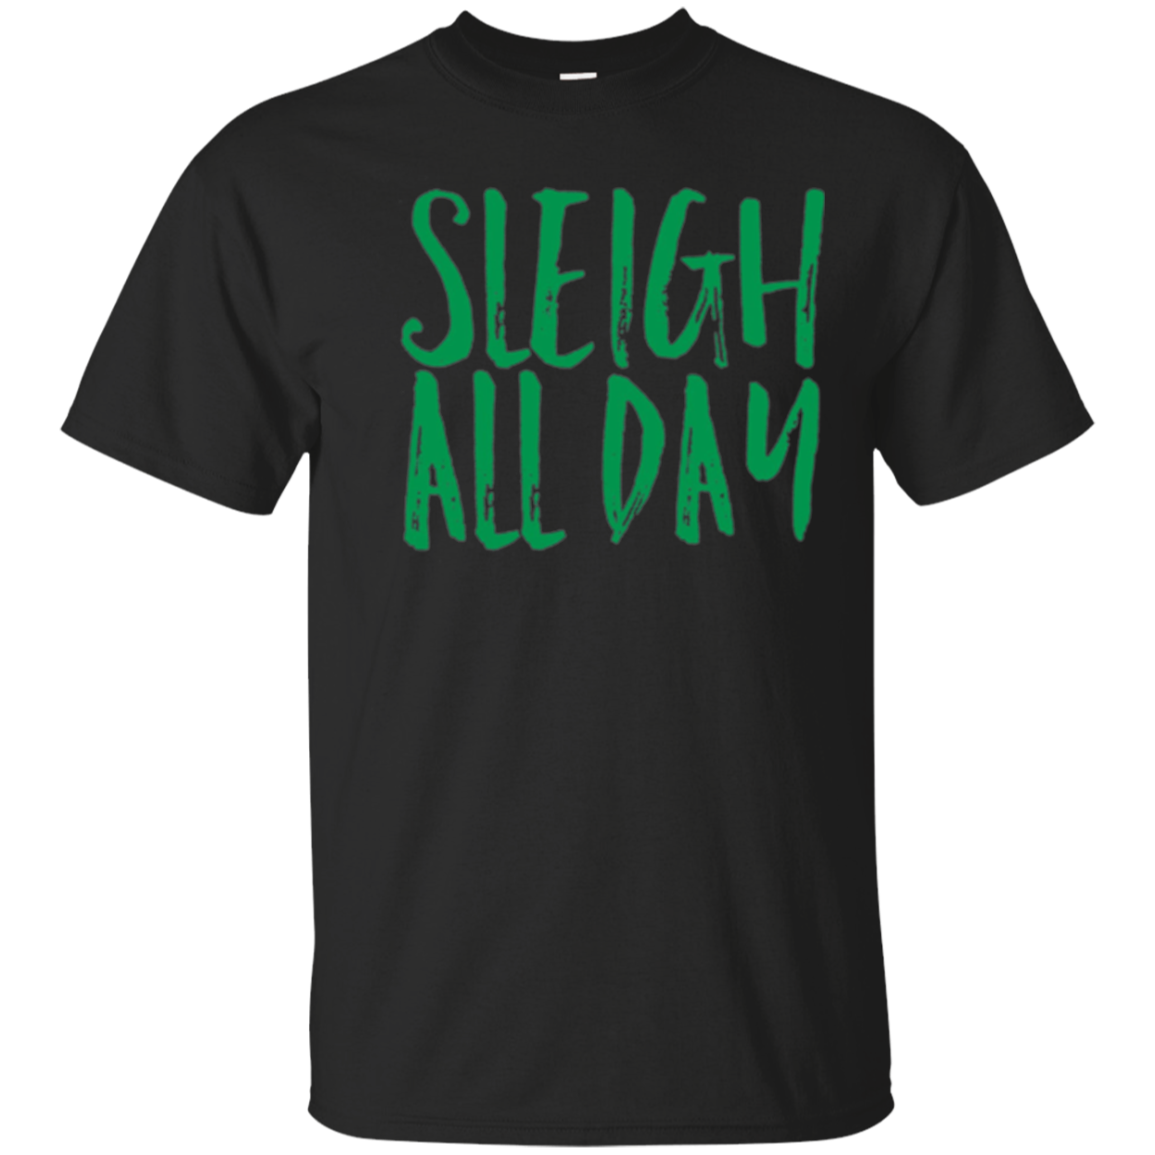 Sleigh All Day Funny Christmas Mom Holiday Party Shirt